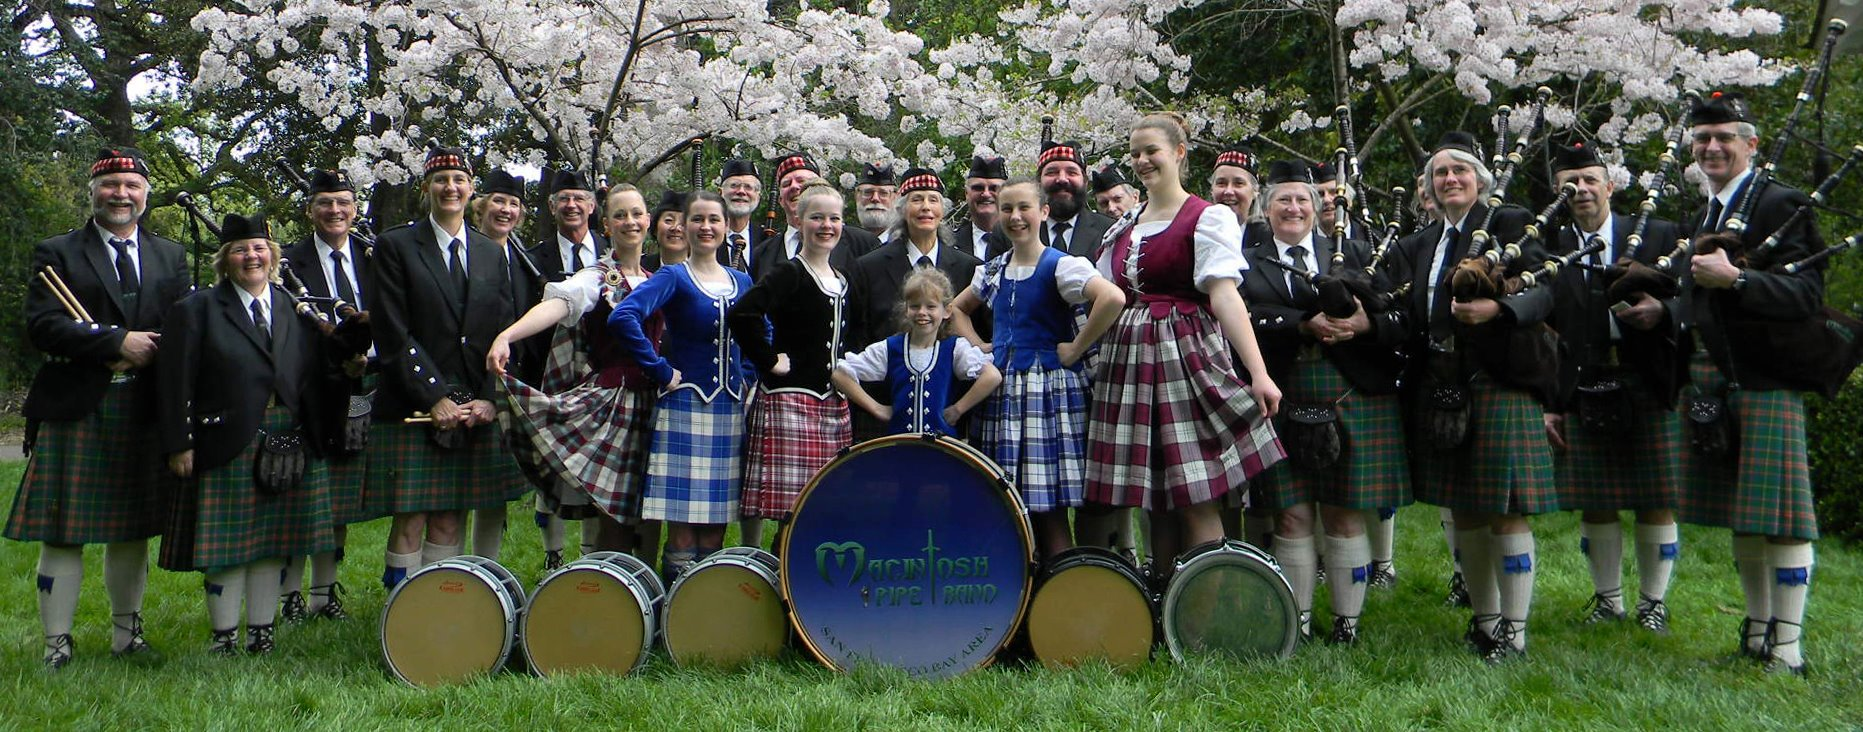 MacIntosh Pipe Band